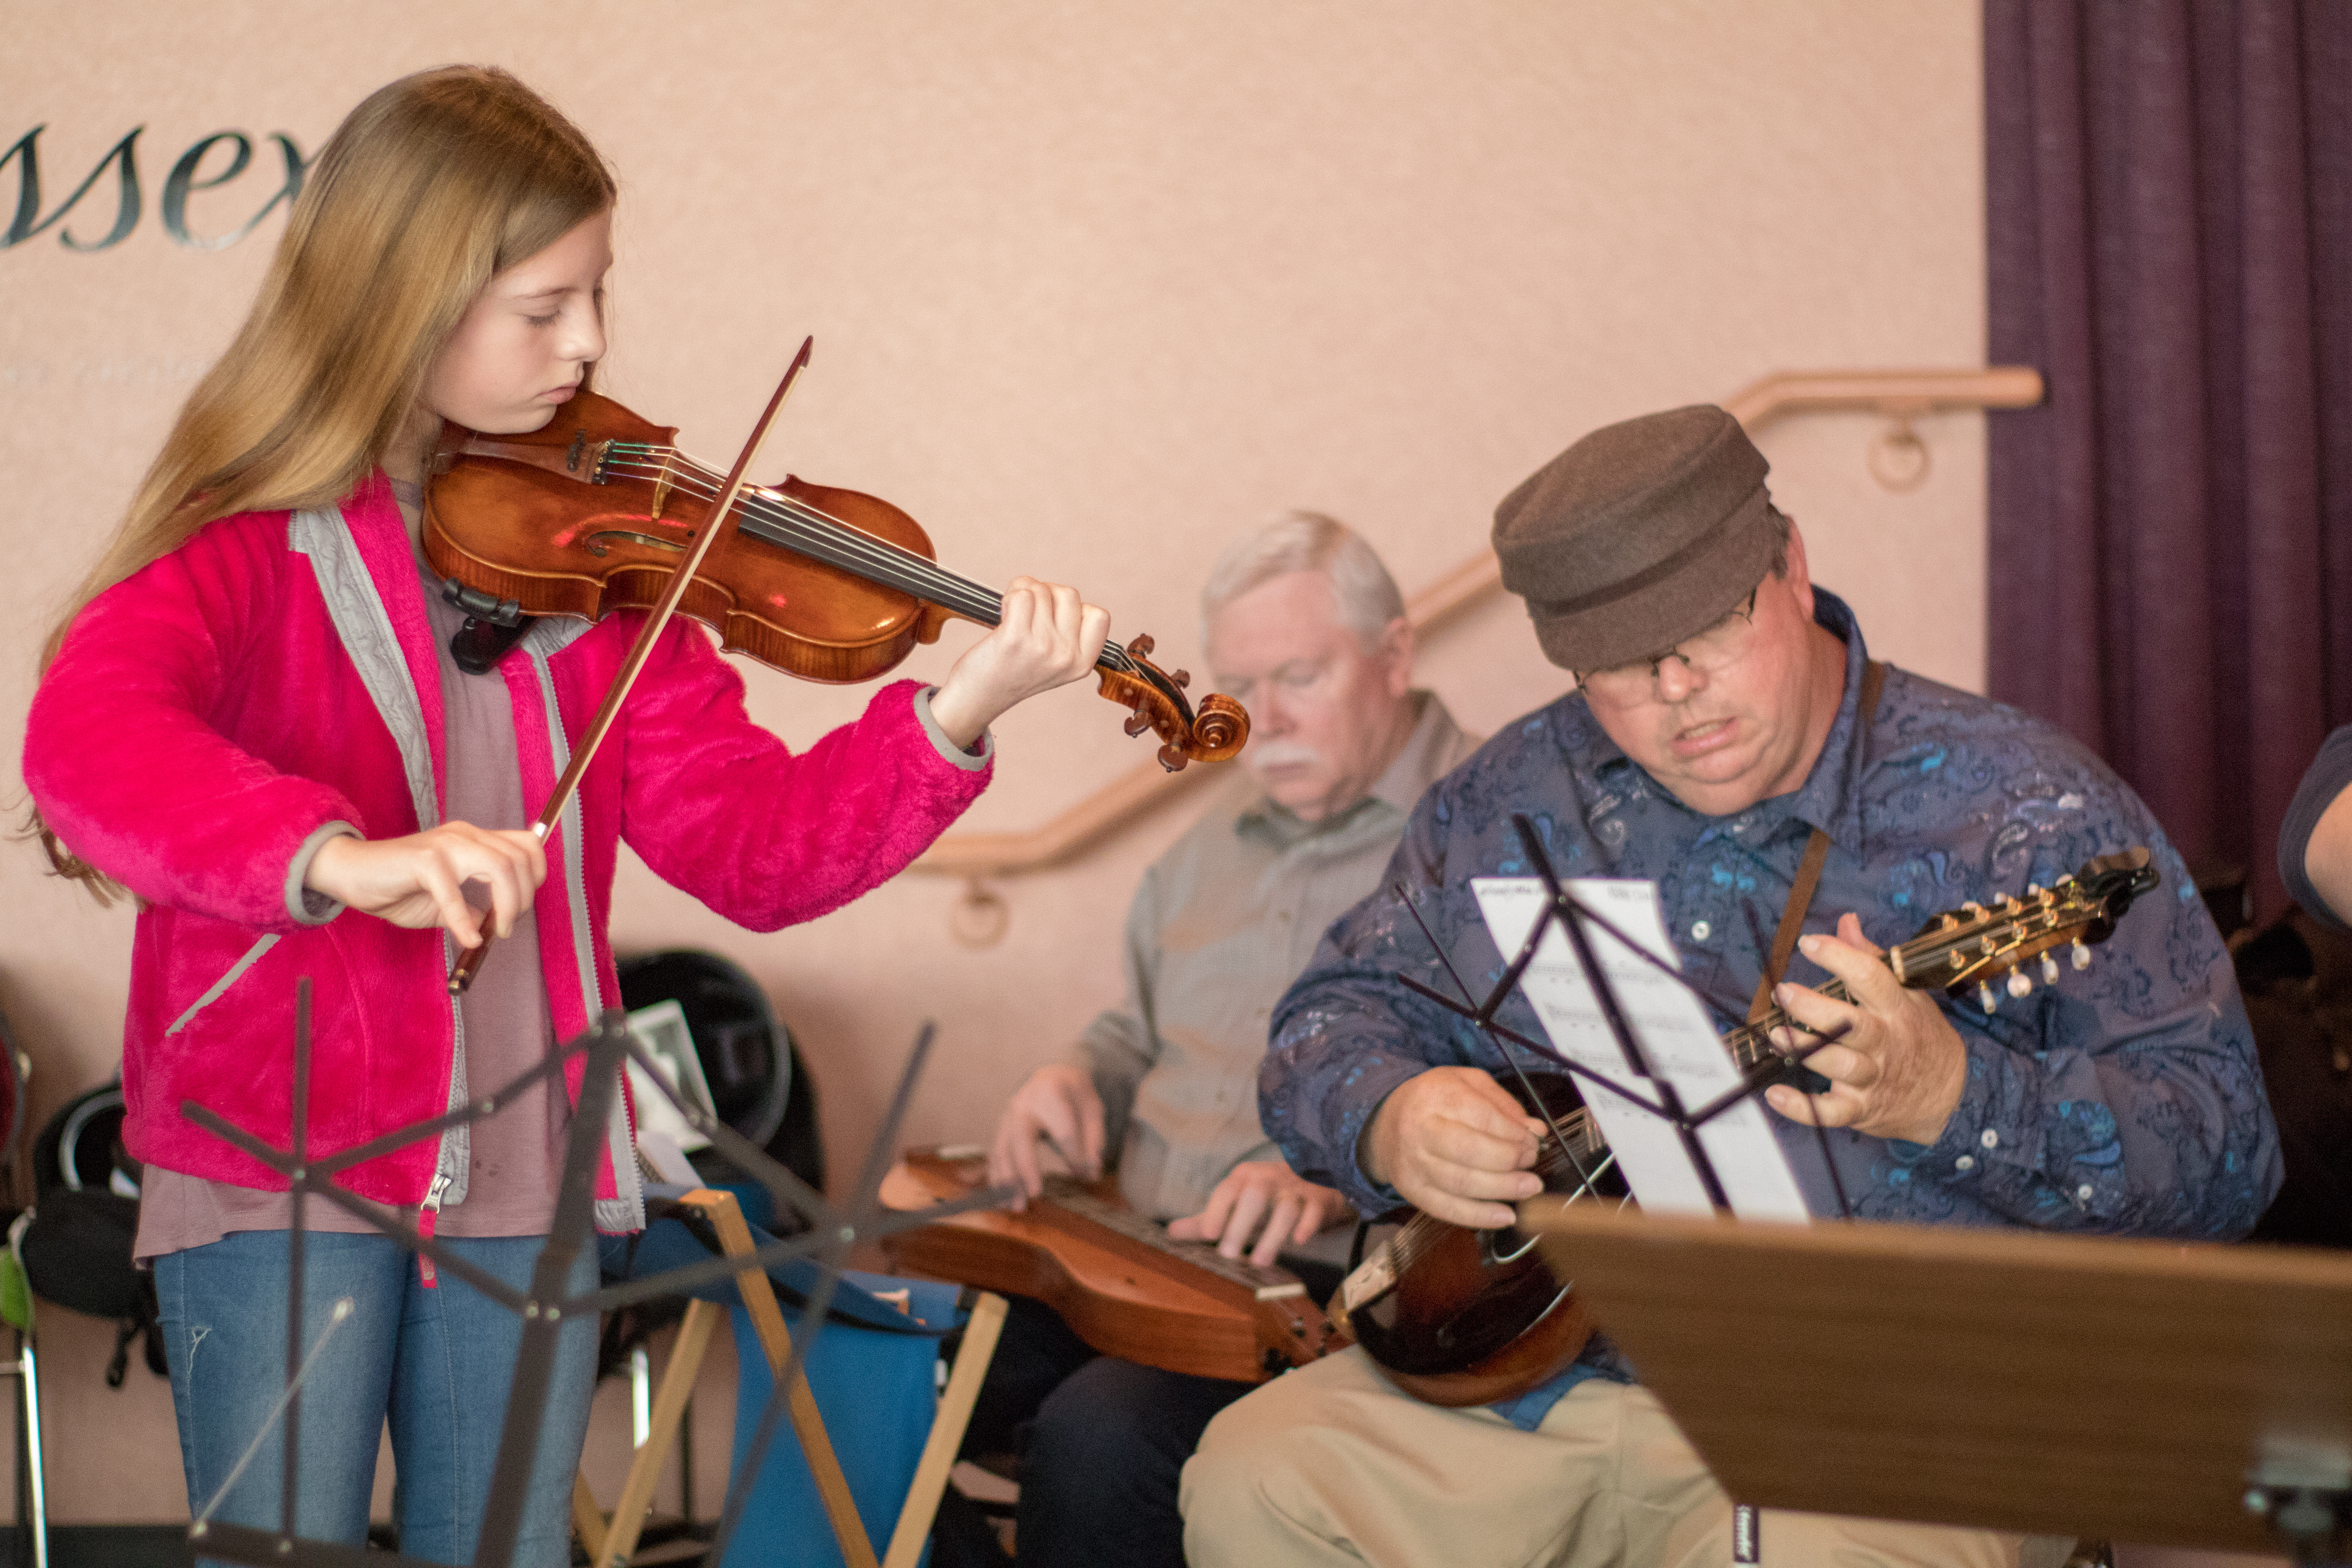 A young violinist plays along with the backing band at our Fiddle Fair.